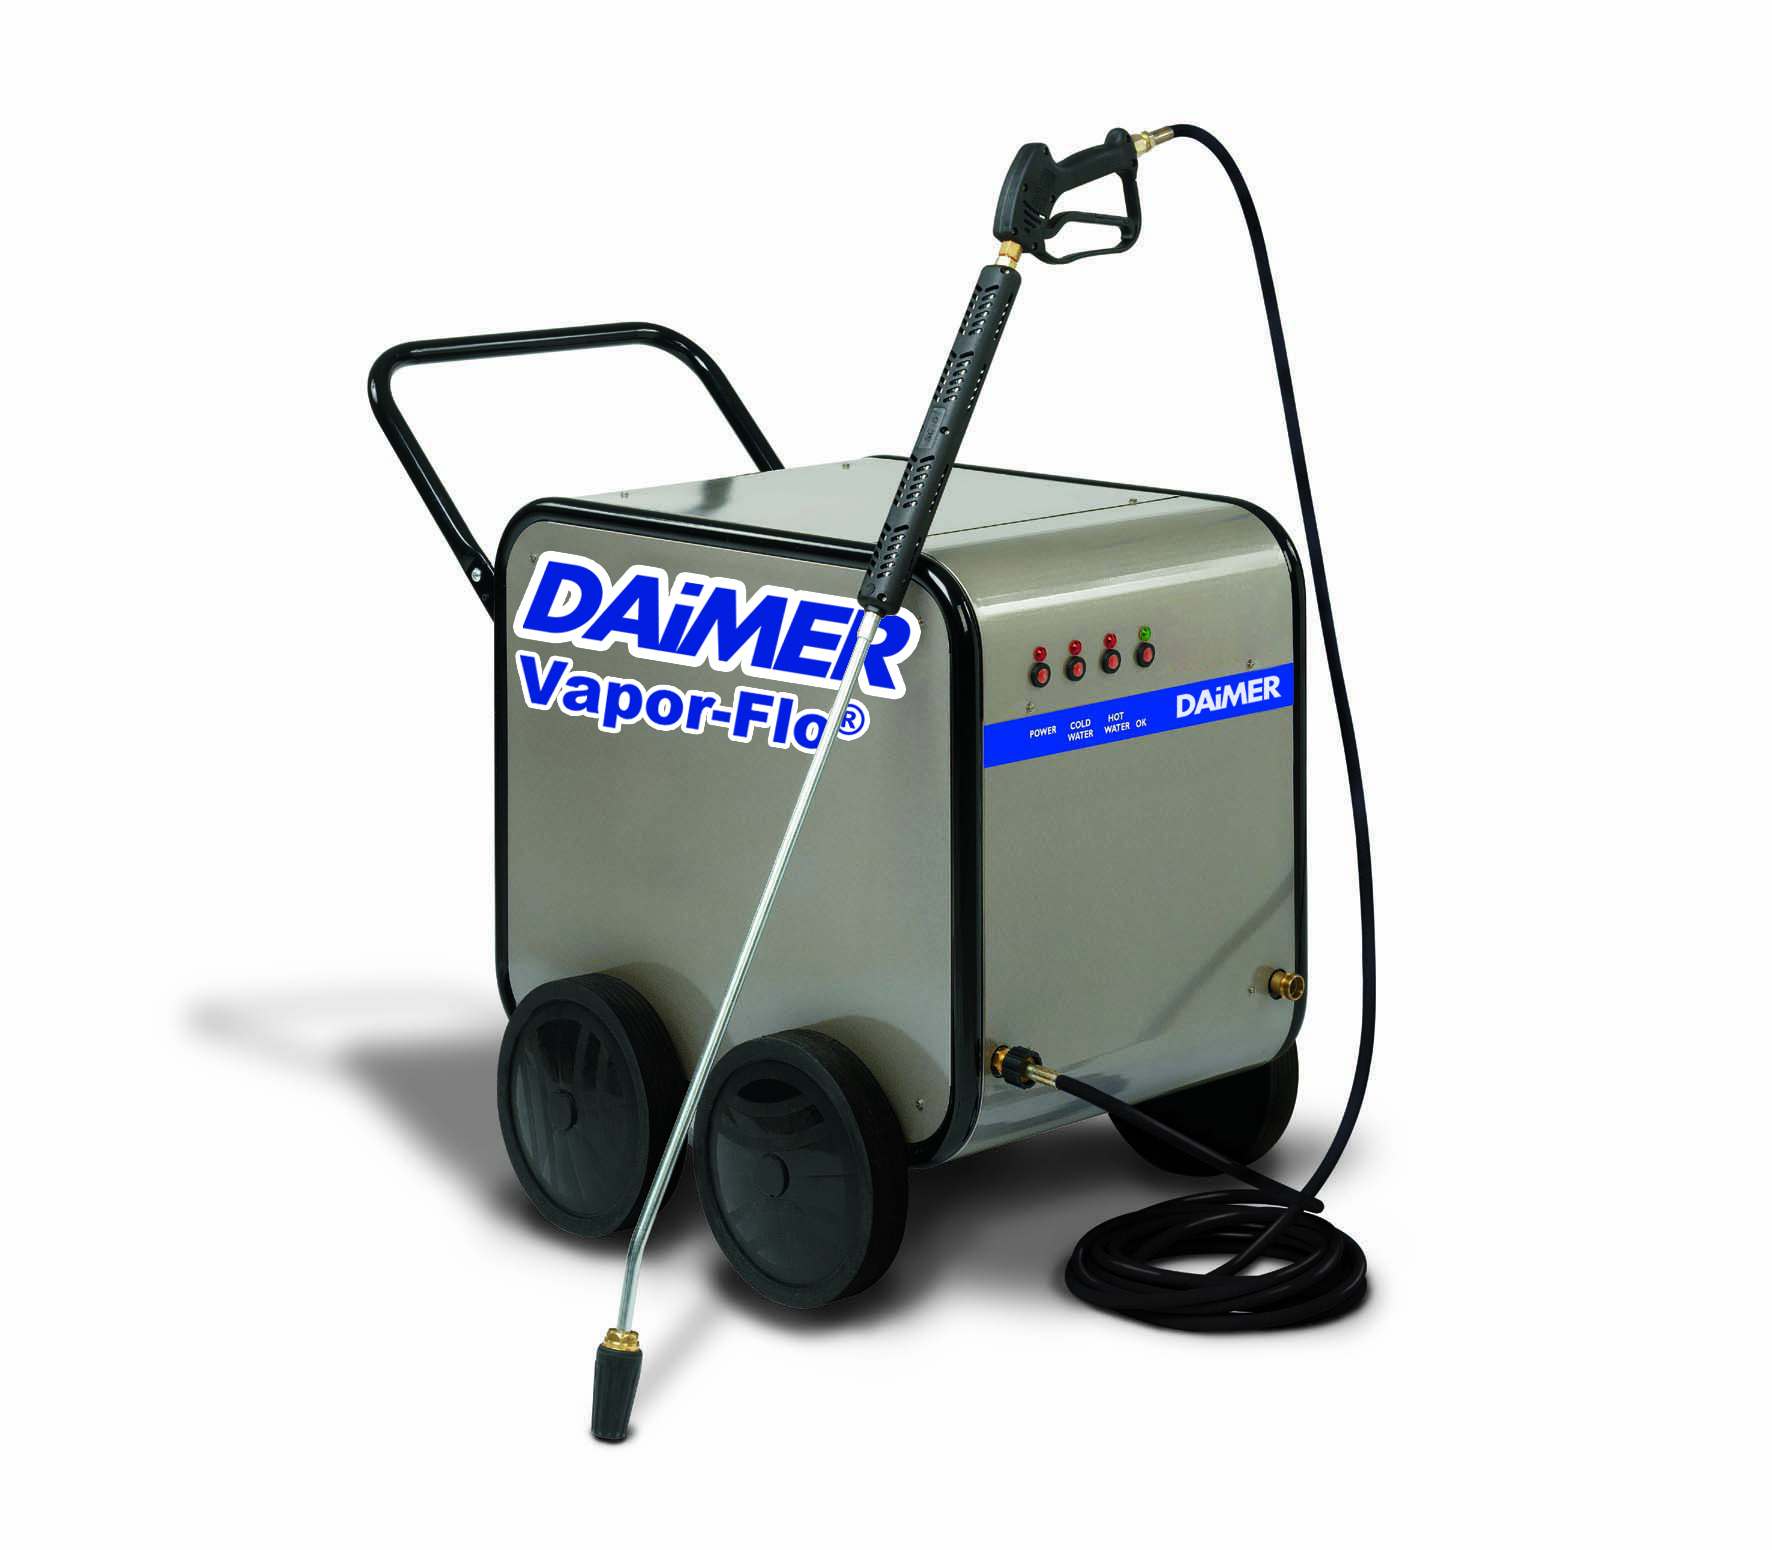 Daimer Ships Electric Pressure Washer As Steam Cleaner